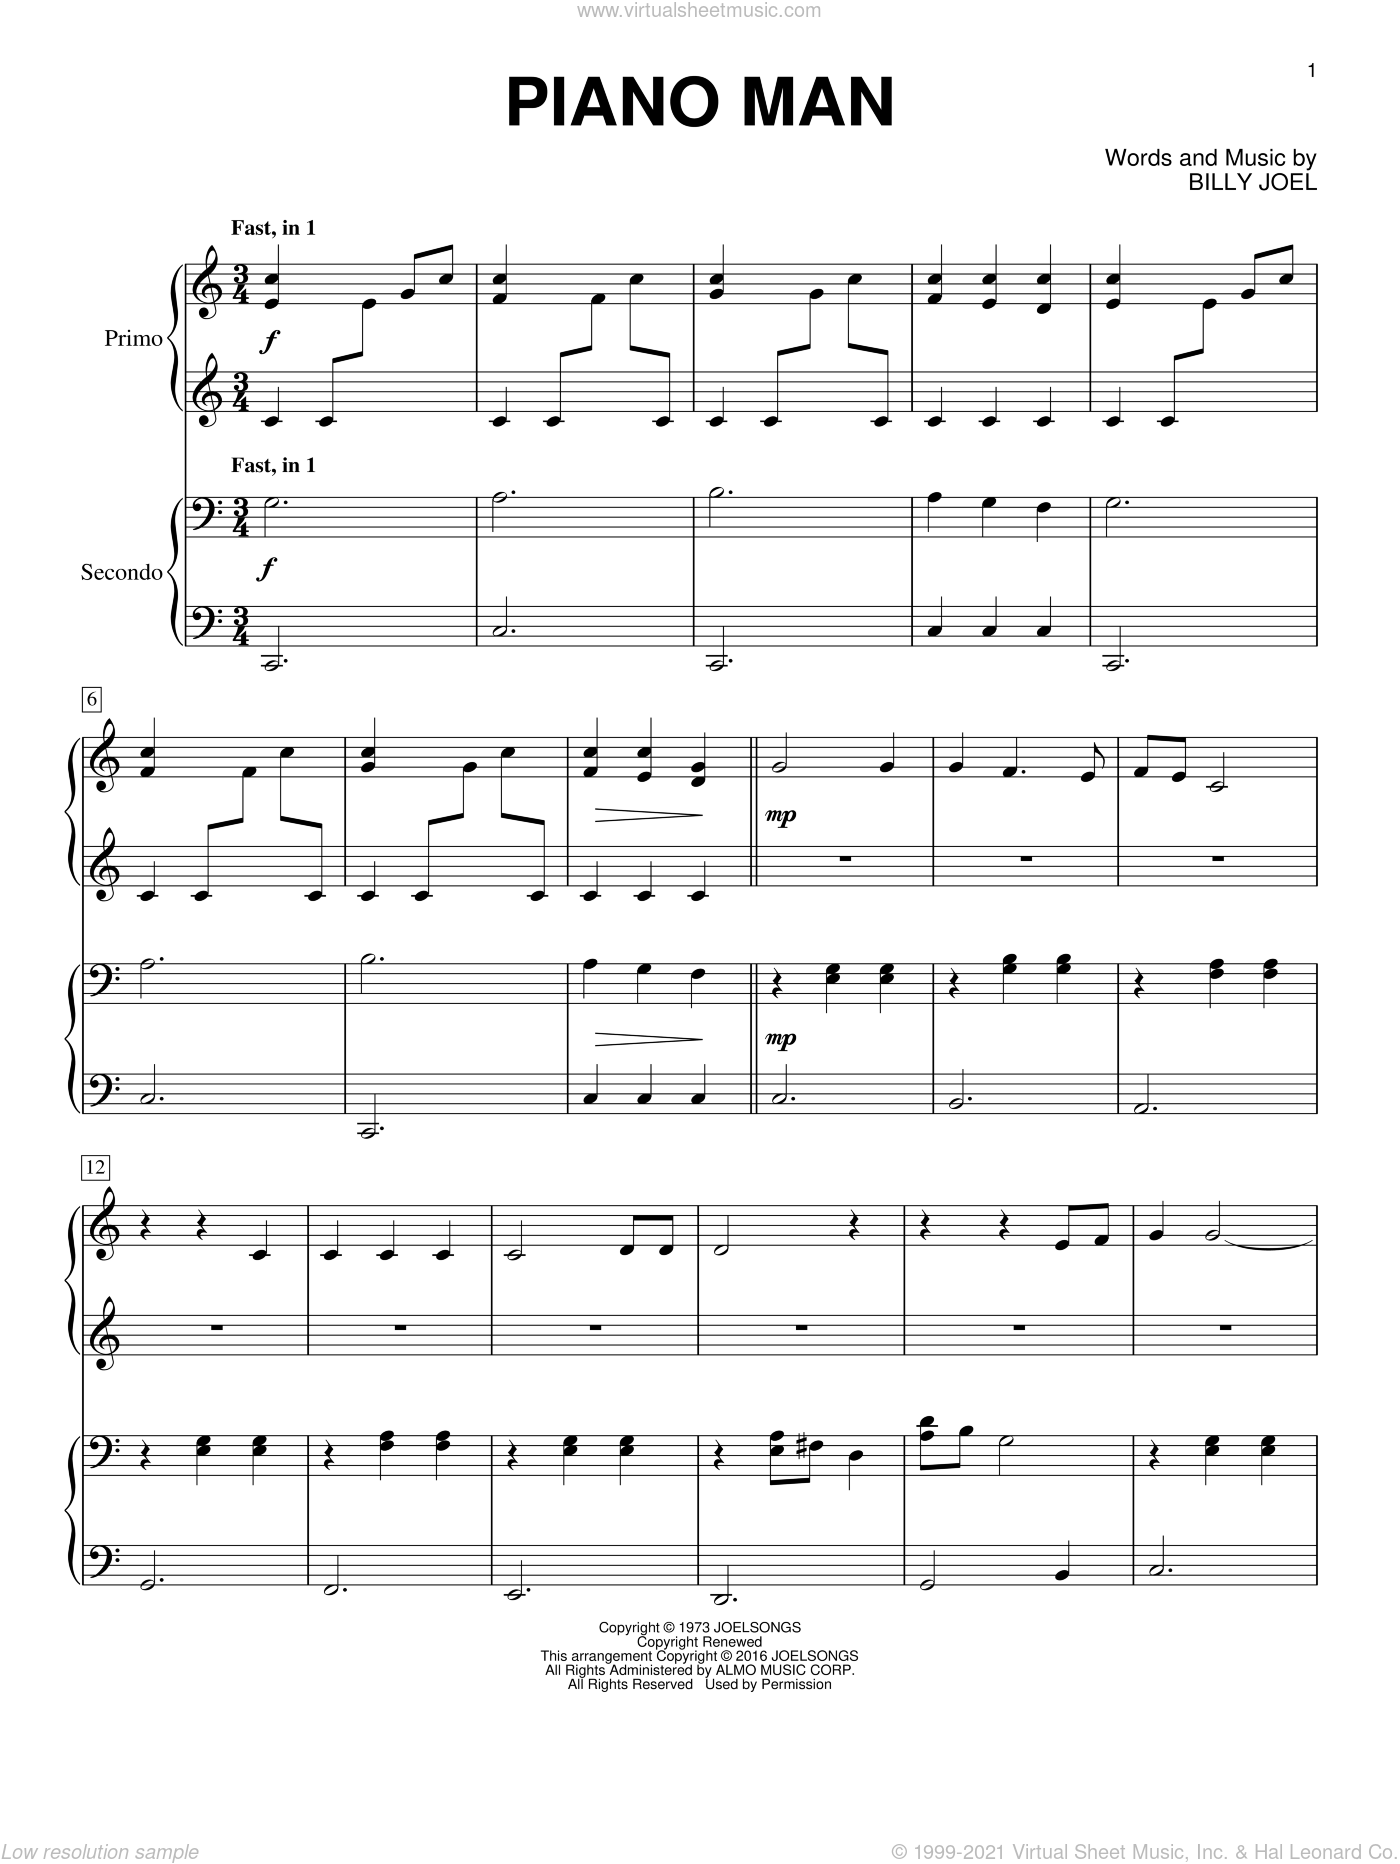 Piano Man sheet music for piano four hands by Billy Joel, intermediate skill level